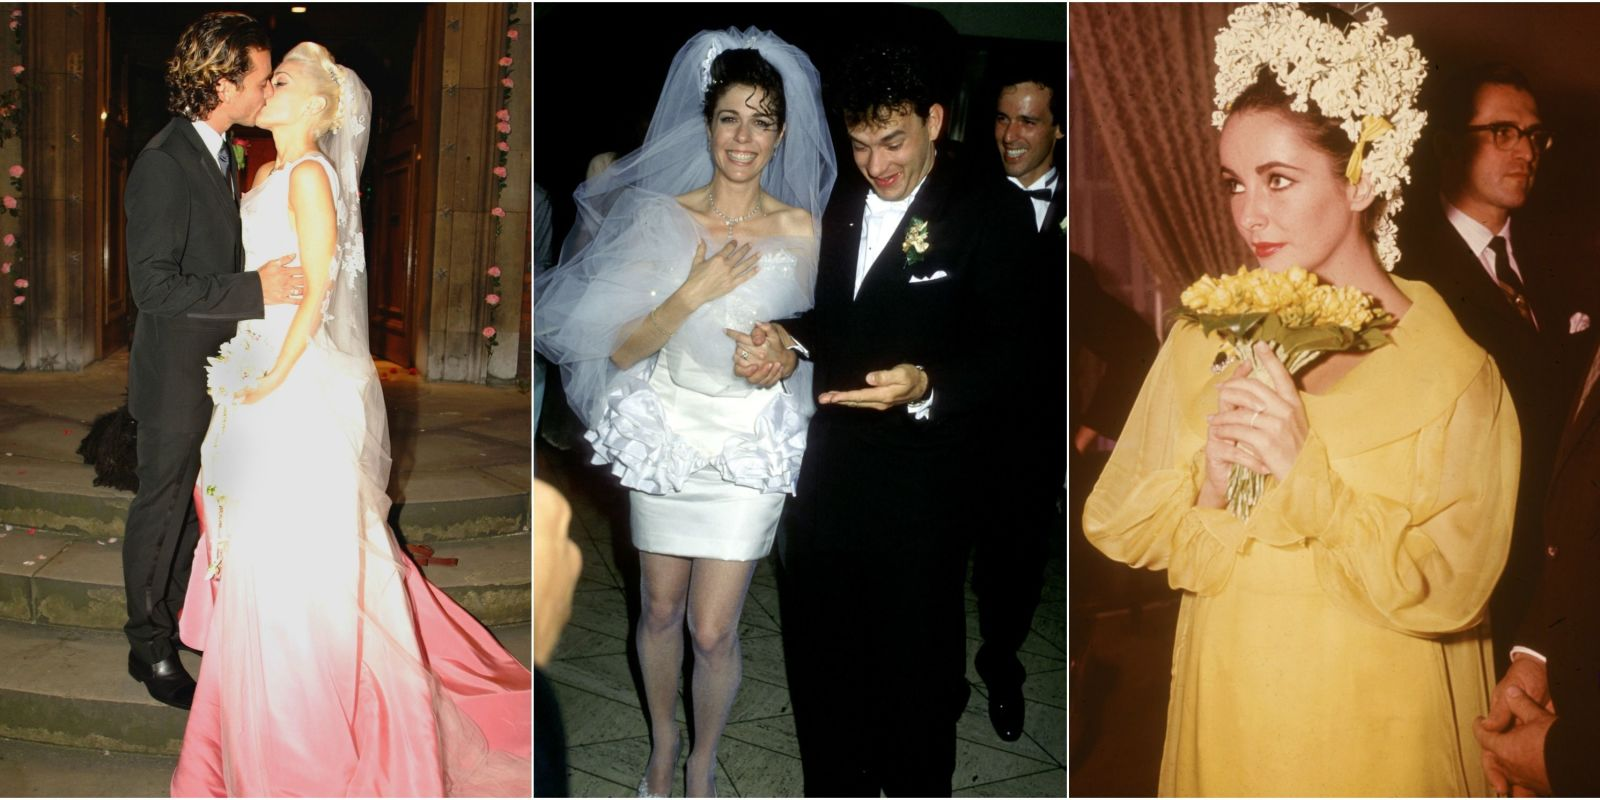 The Most Scandalous Wedding Dresses Of All Time Famous - Lady worst wedding guest history